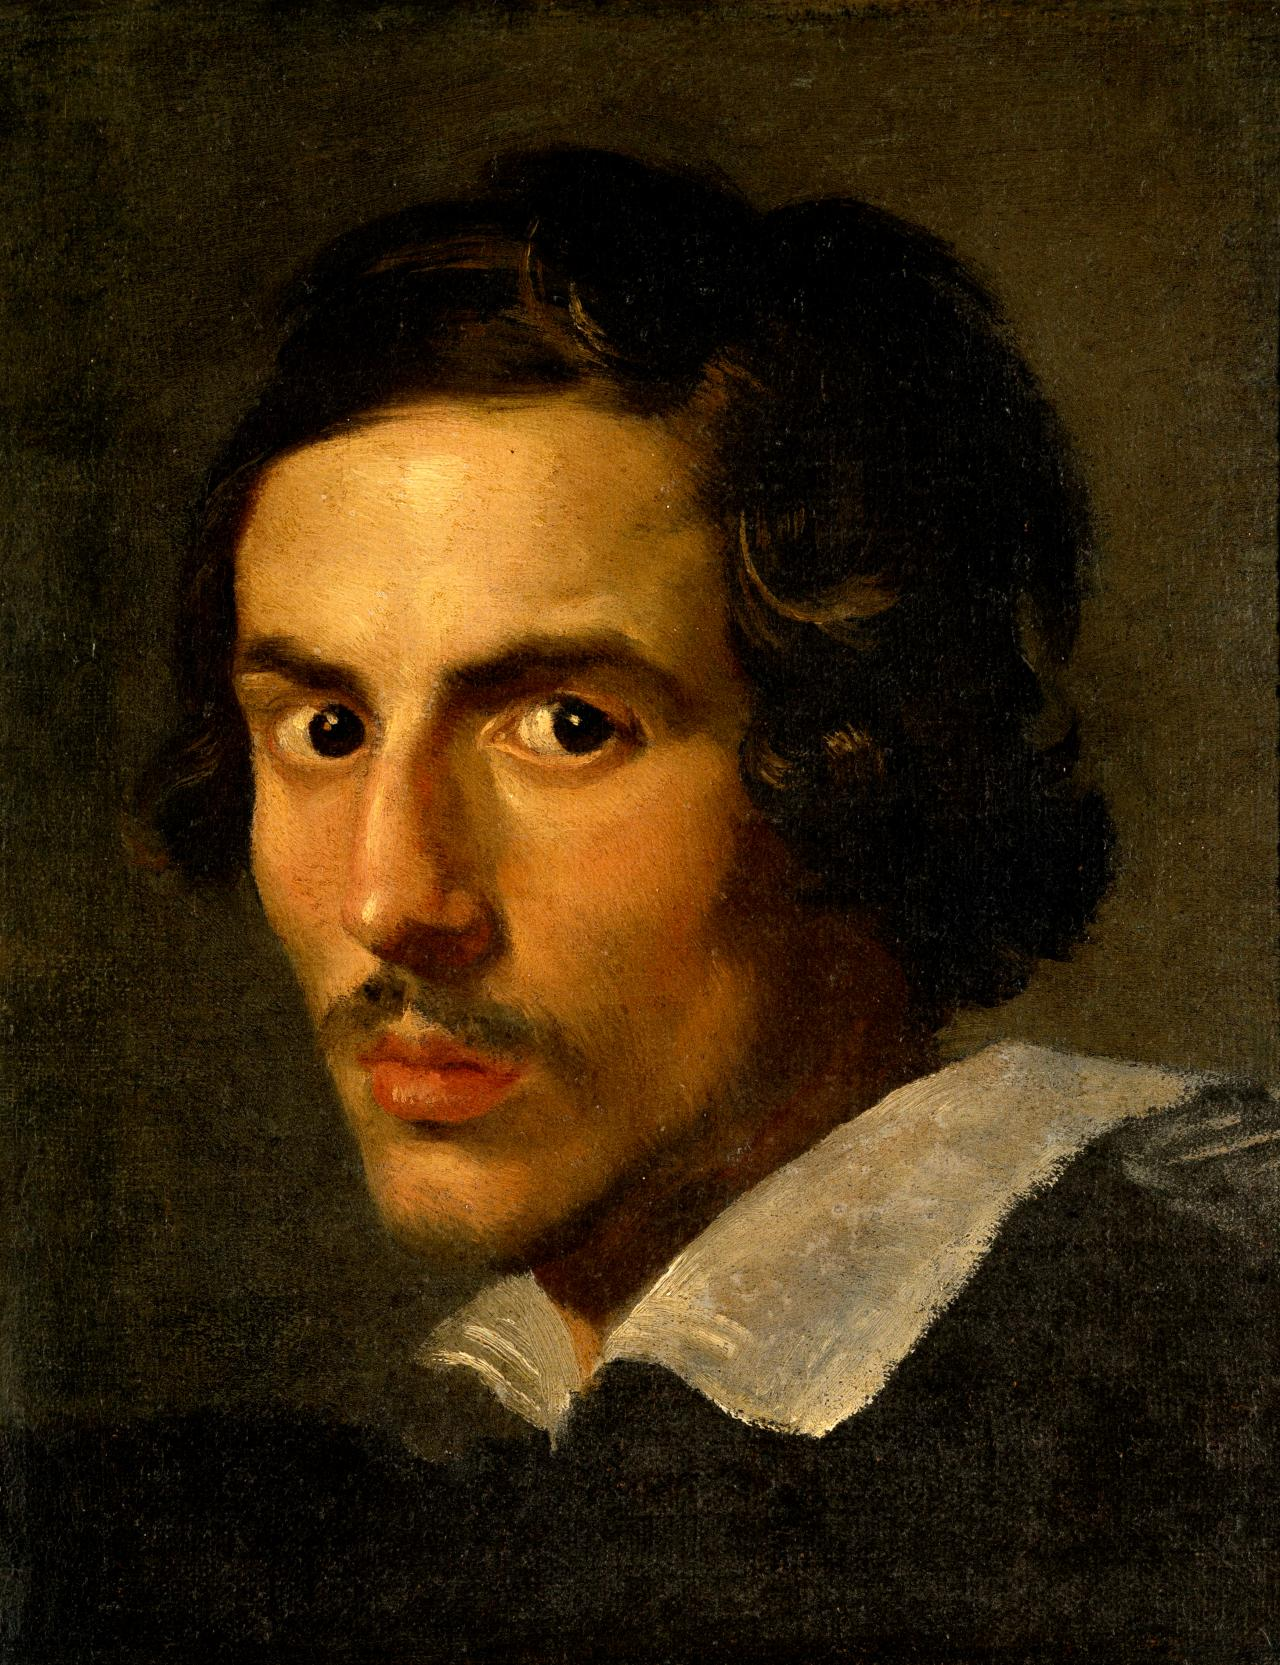 a bernini self portrait ngv the attribution of and identification of the sitter in the galleria borghese portrait are today unquestioned but the dating of the painting hinges on its